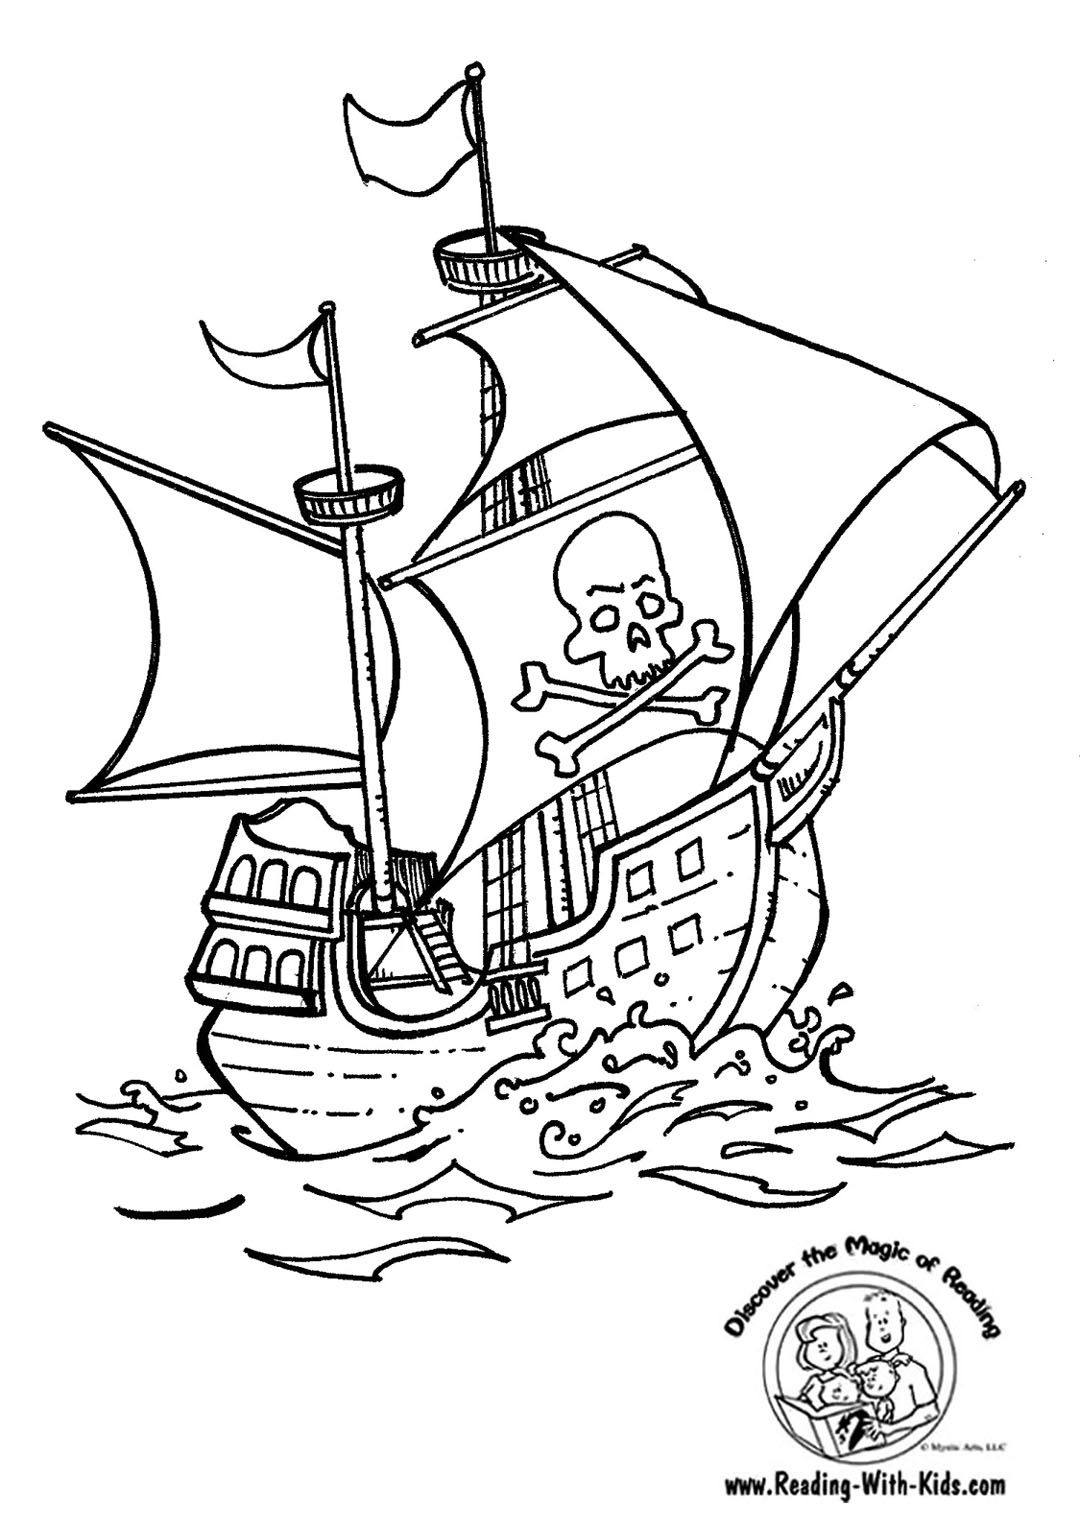 pirate ship to color pirate ship coloring page pirate coloring pages pirate color to ship